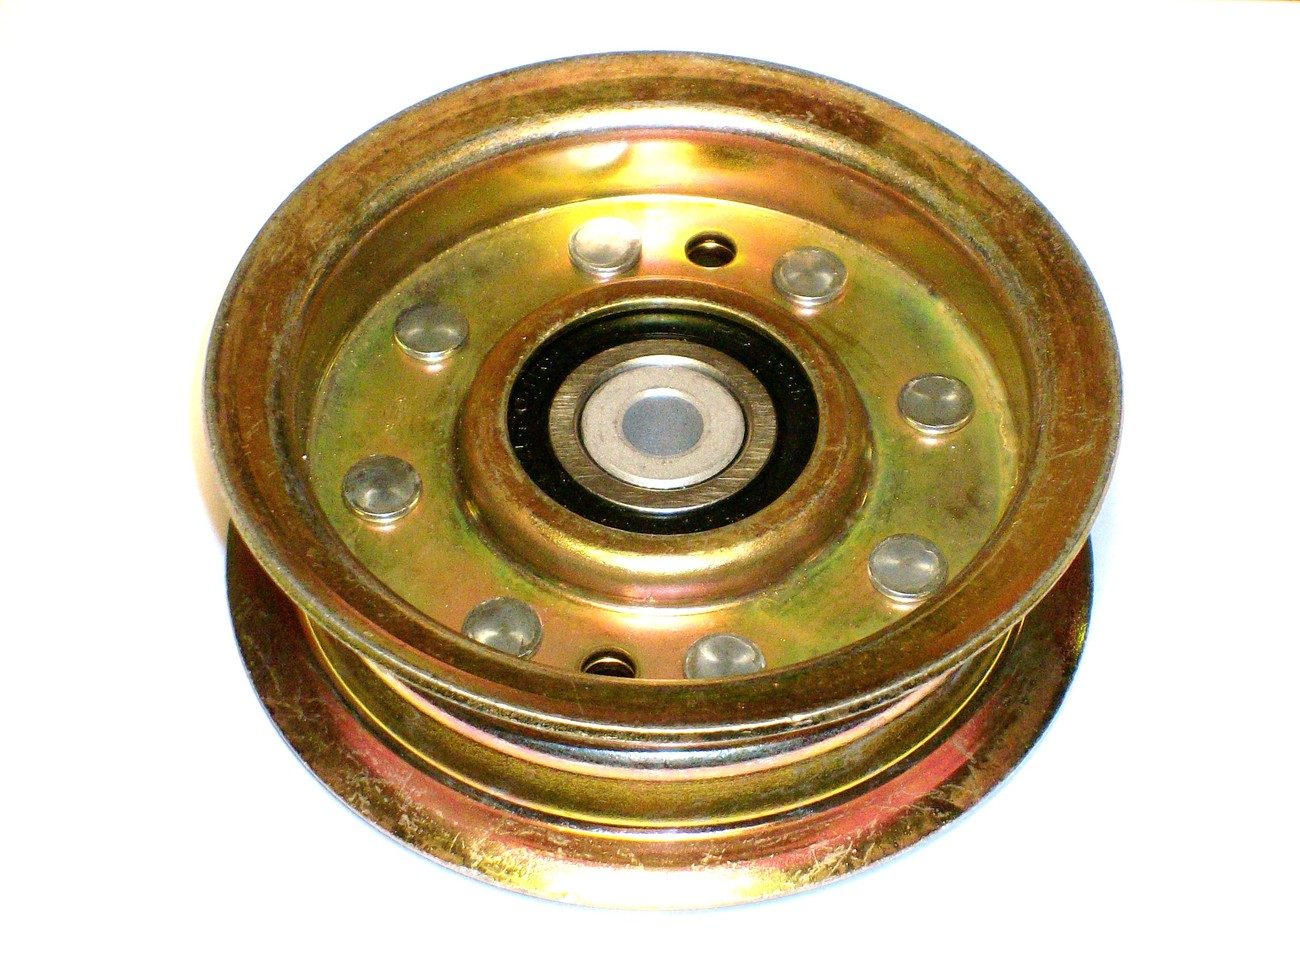 46 Quot Cut Deck Idler Pulley For Ayp Sears Craftsman Lawn